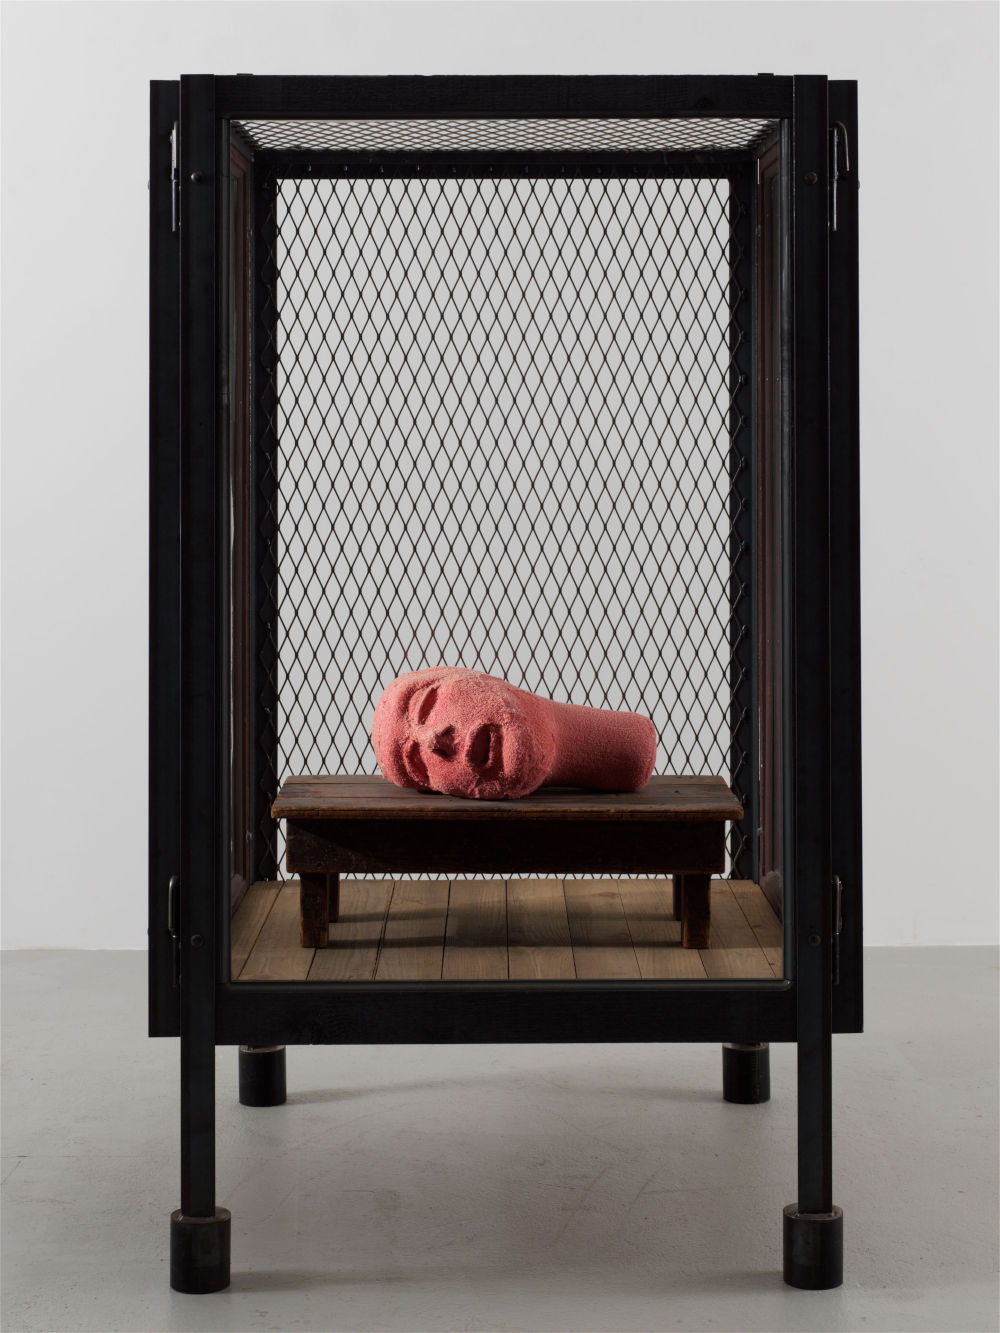 Louise Bourgeois (1911 - 2010), Cell XXIII (Portrait), 2000. Steel, glass, wood and fabric 177.8 x 109.2 x 109.2 cm / 70 x 43 x 43 in © The Easton Foundation/VAGA at ARS, NY and DACS, London 2019. Courtesy of the Ursula Hauser Collection, Switzerland